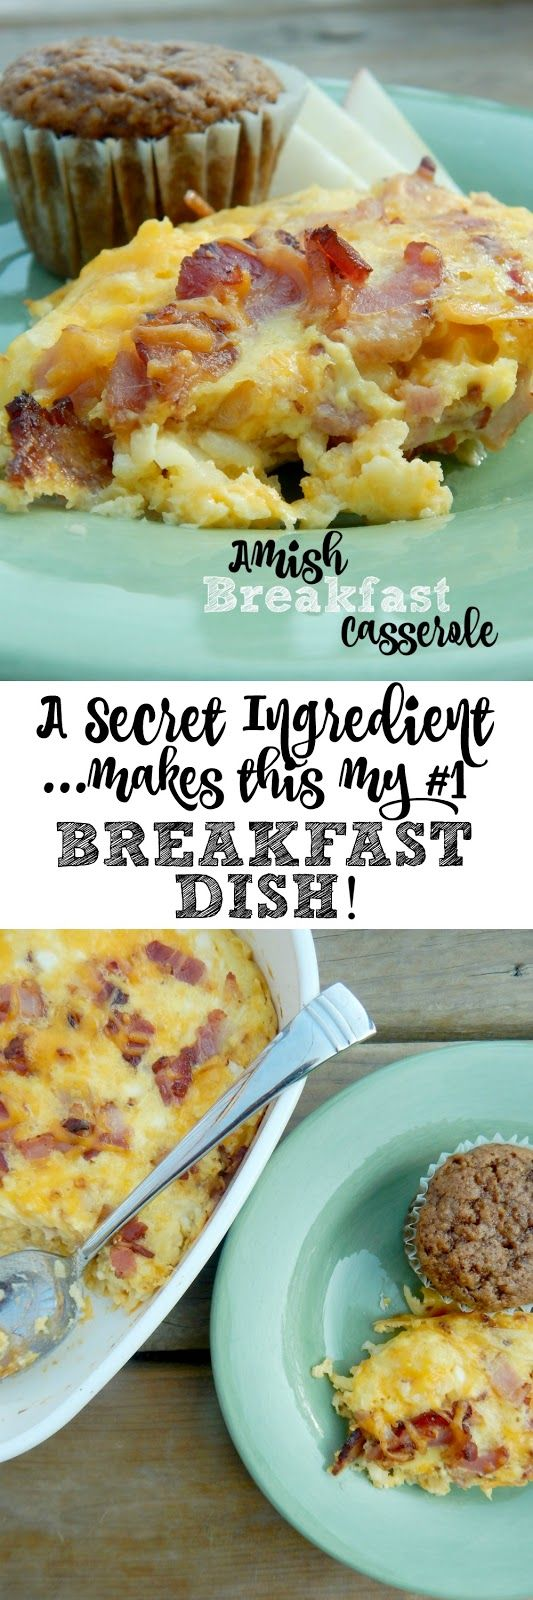 Amish Breakfast Casserole...the BEST baked egg dish EVER!  Can you guess the secret ingredient?